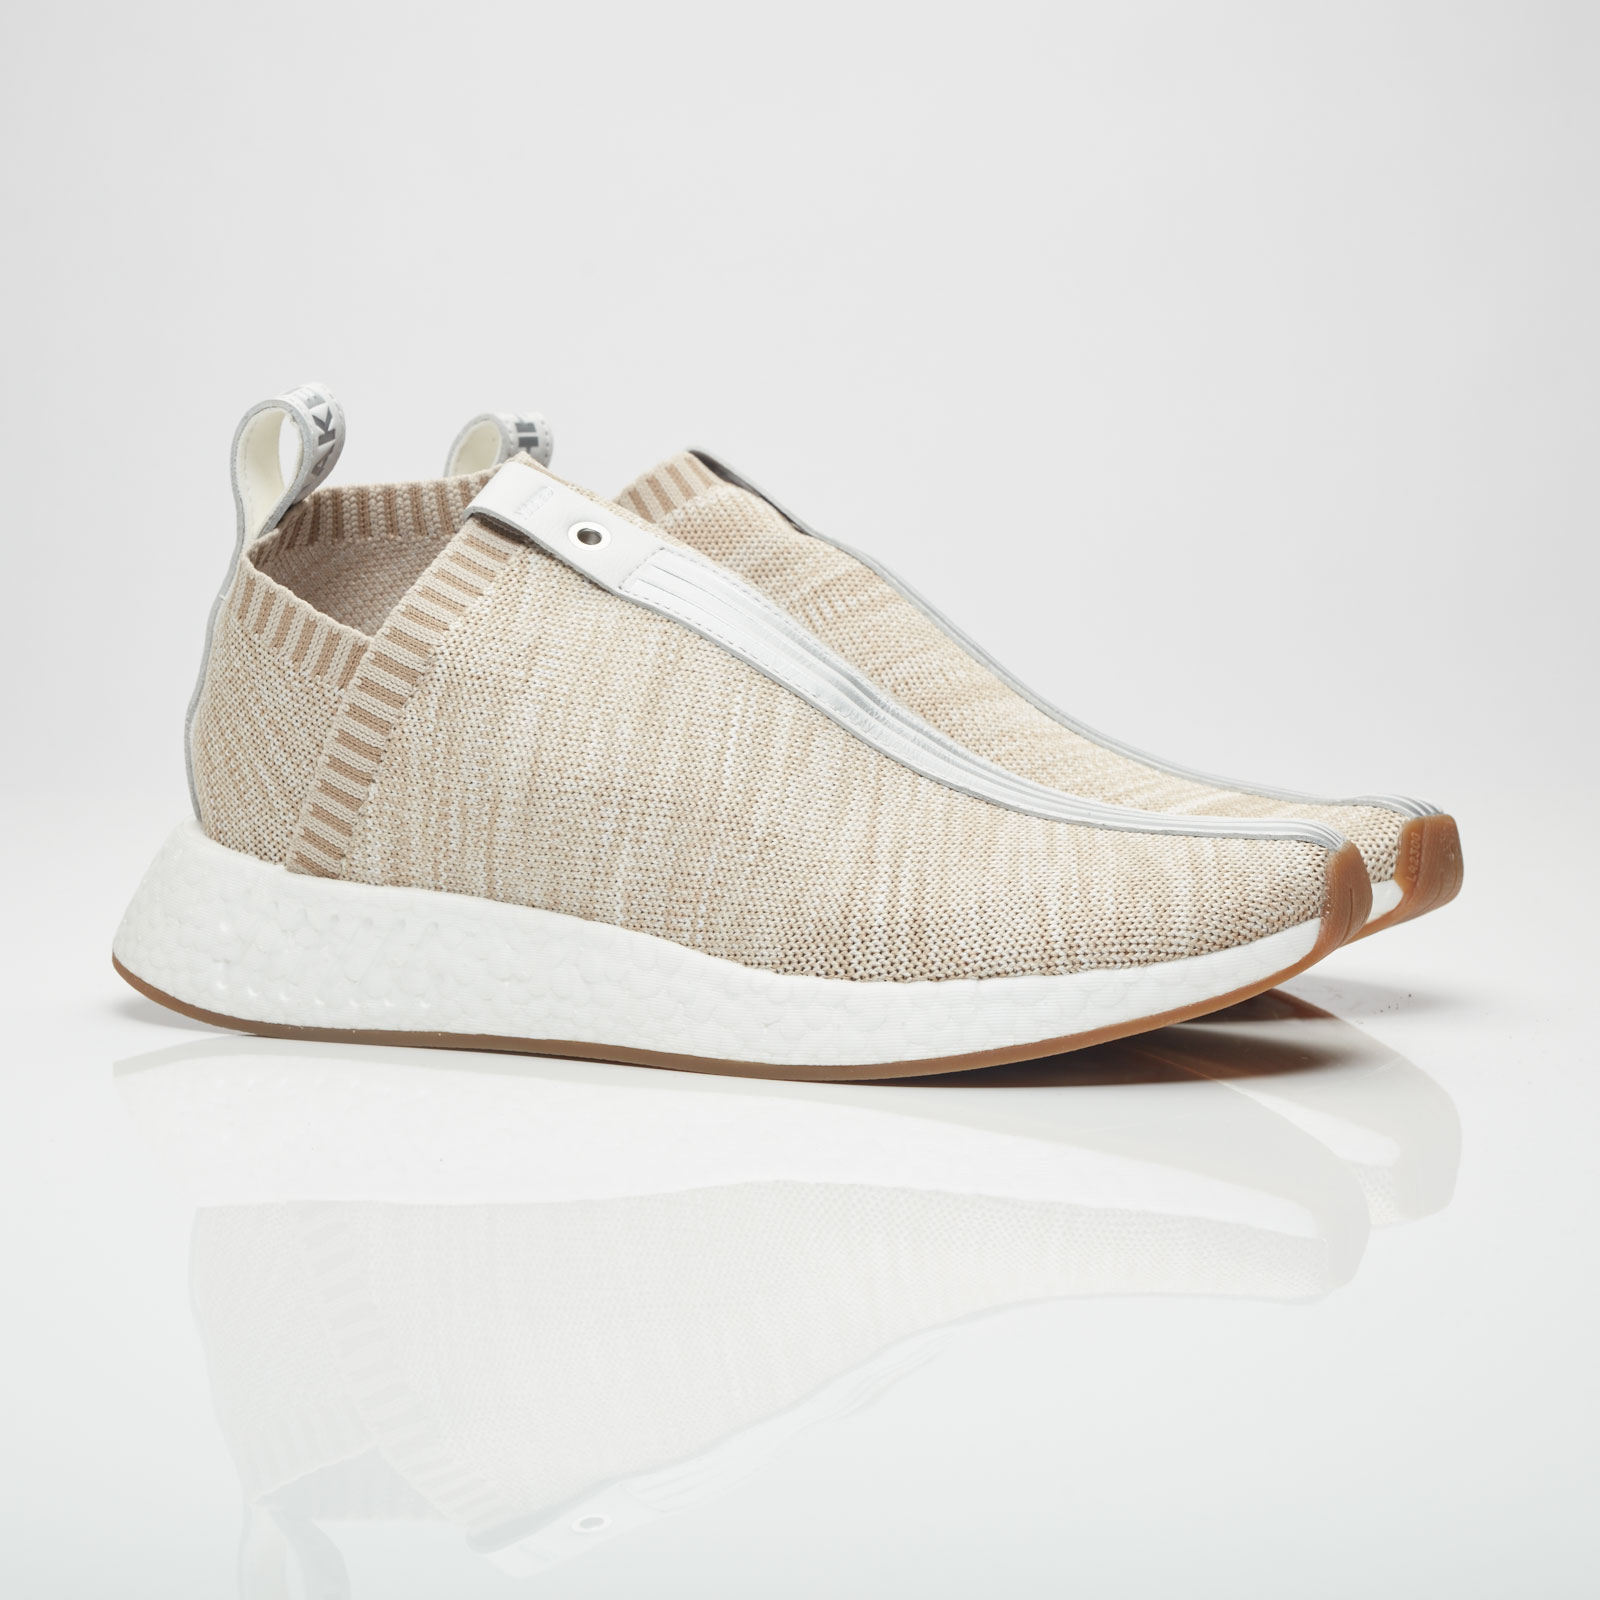 Adidas NMD CS2 PK Naked & Kith by2597 sneakersnstuff Sneakers